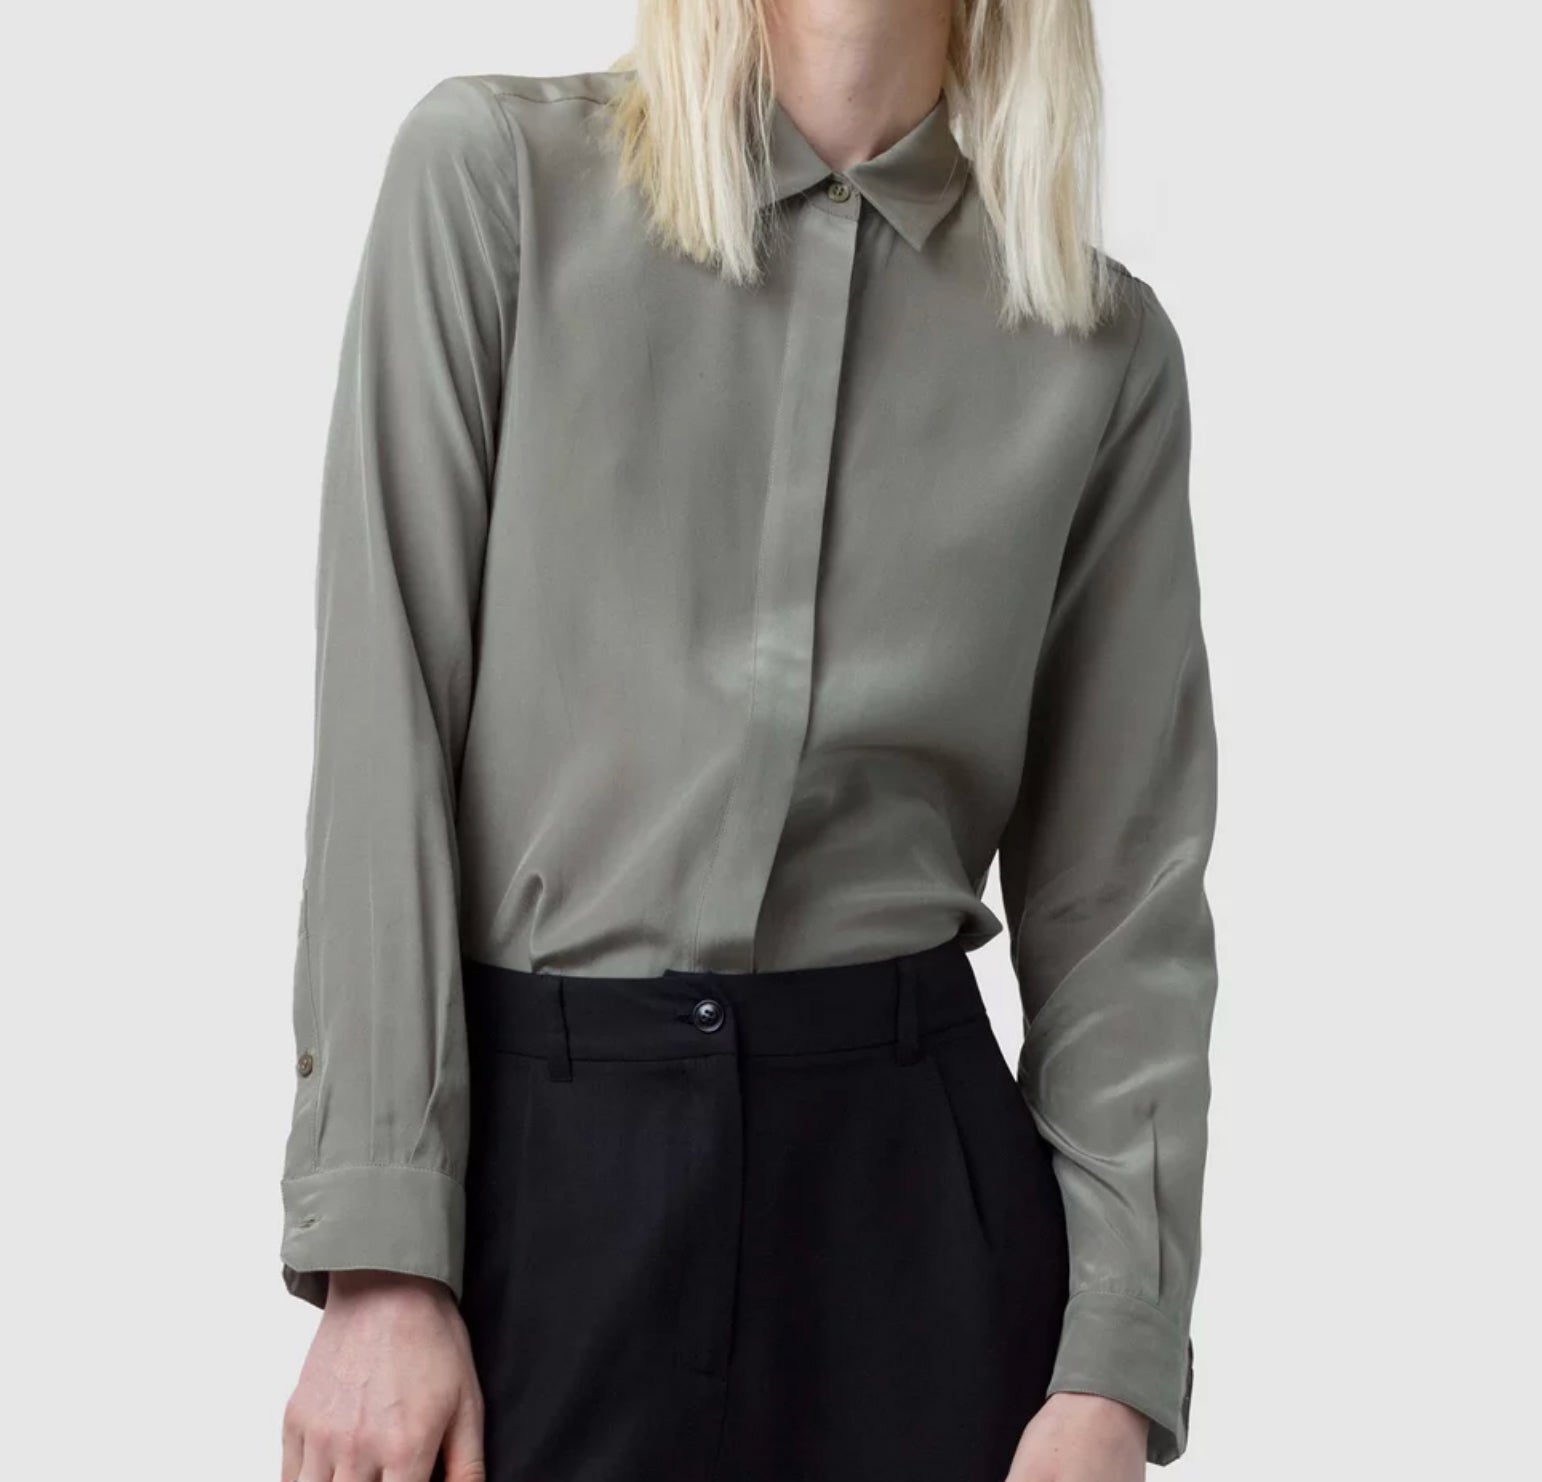 Atsuko shirt - By Nique in khaki colour and made from silk